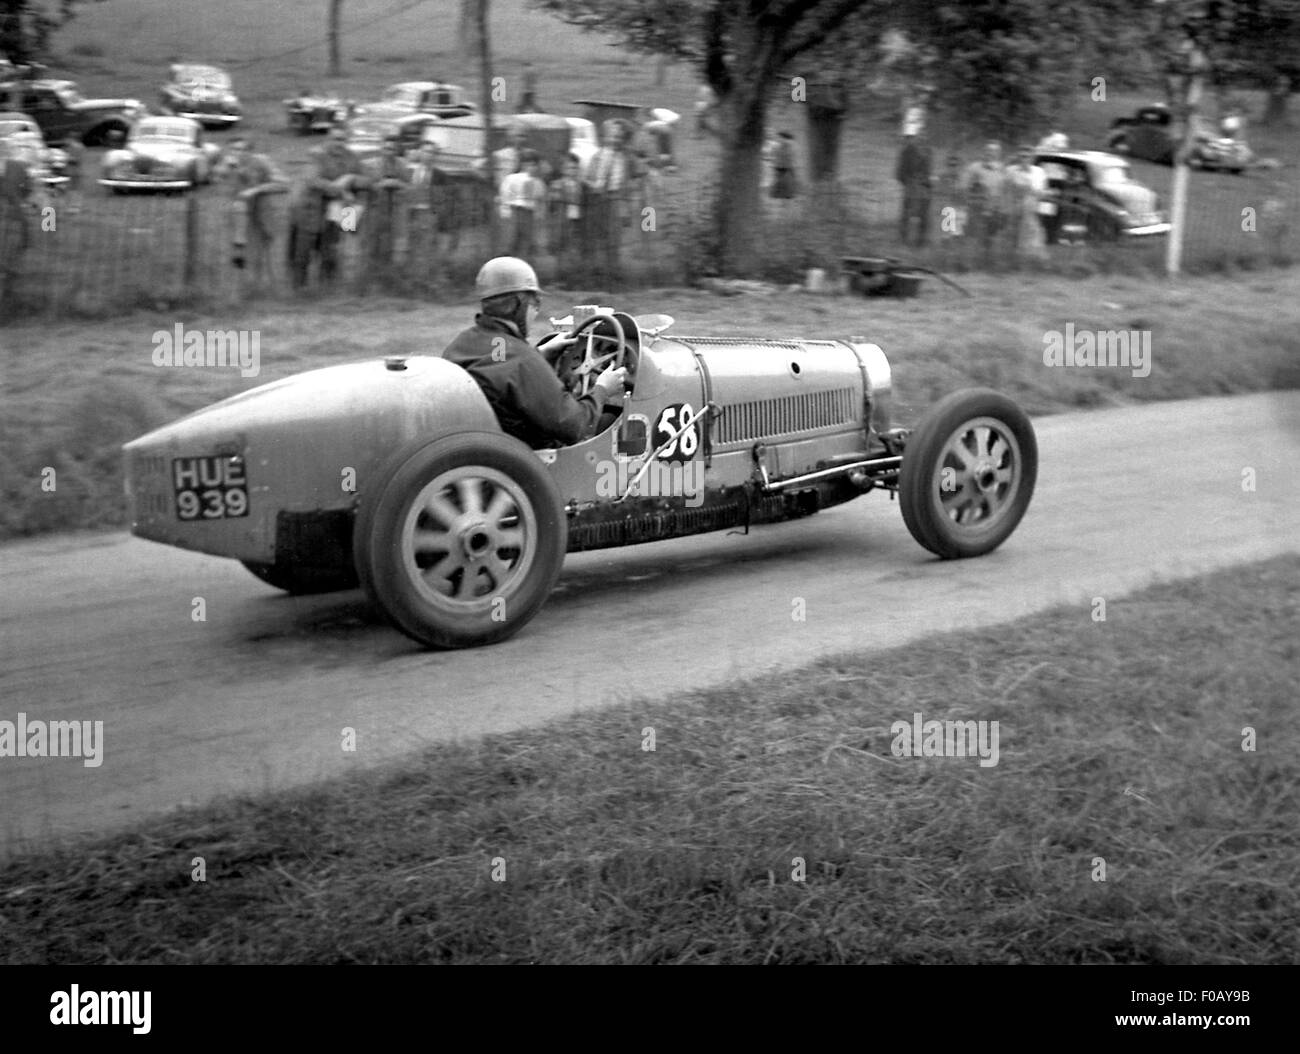 Bugatti racing car at Prescott 1930s - Stock Image